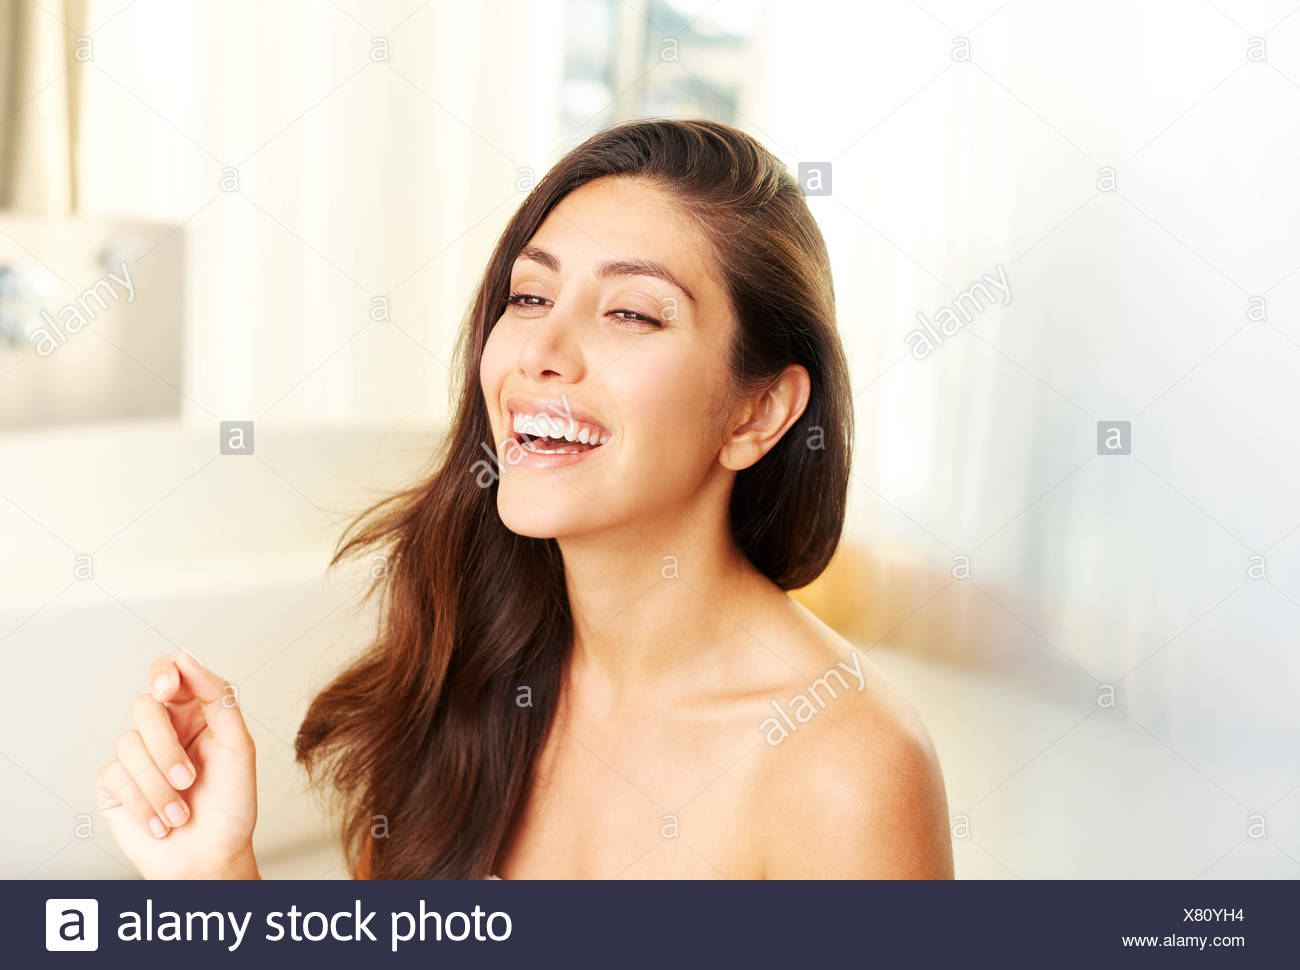 Laughing brunette woman with bare shoulders - Stock Image